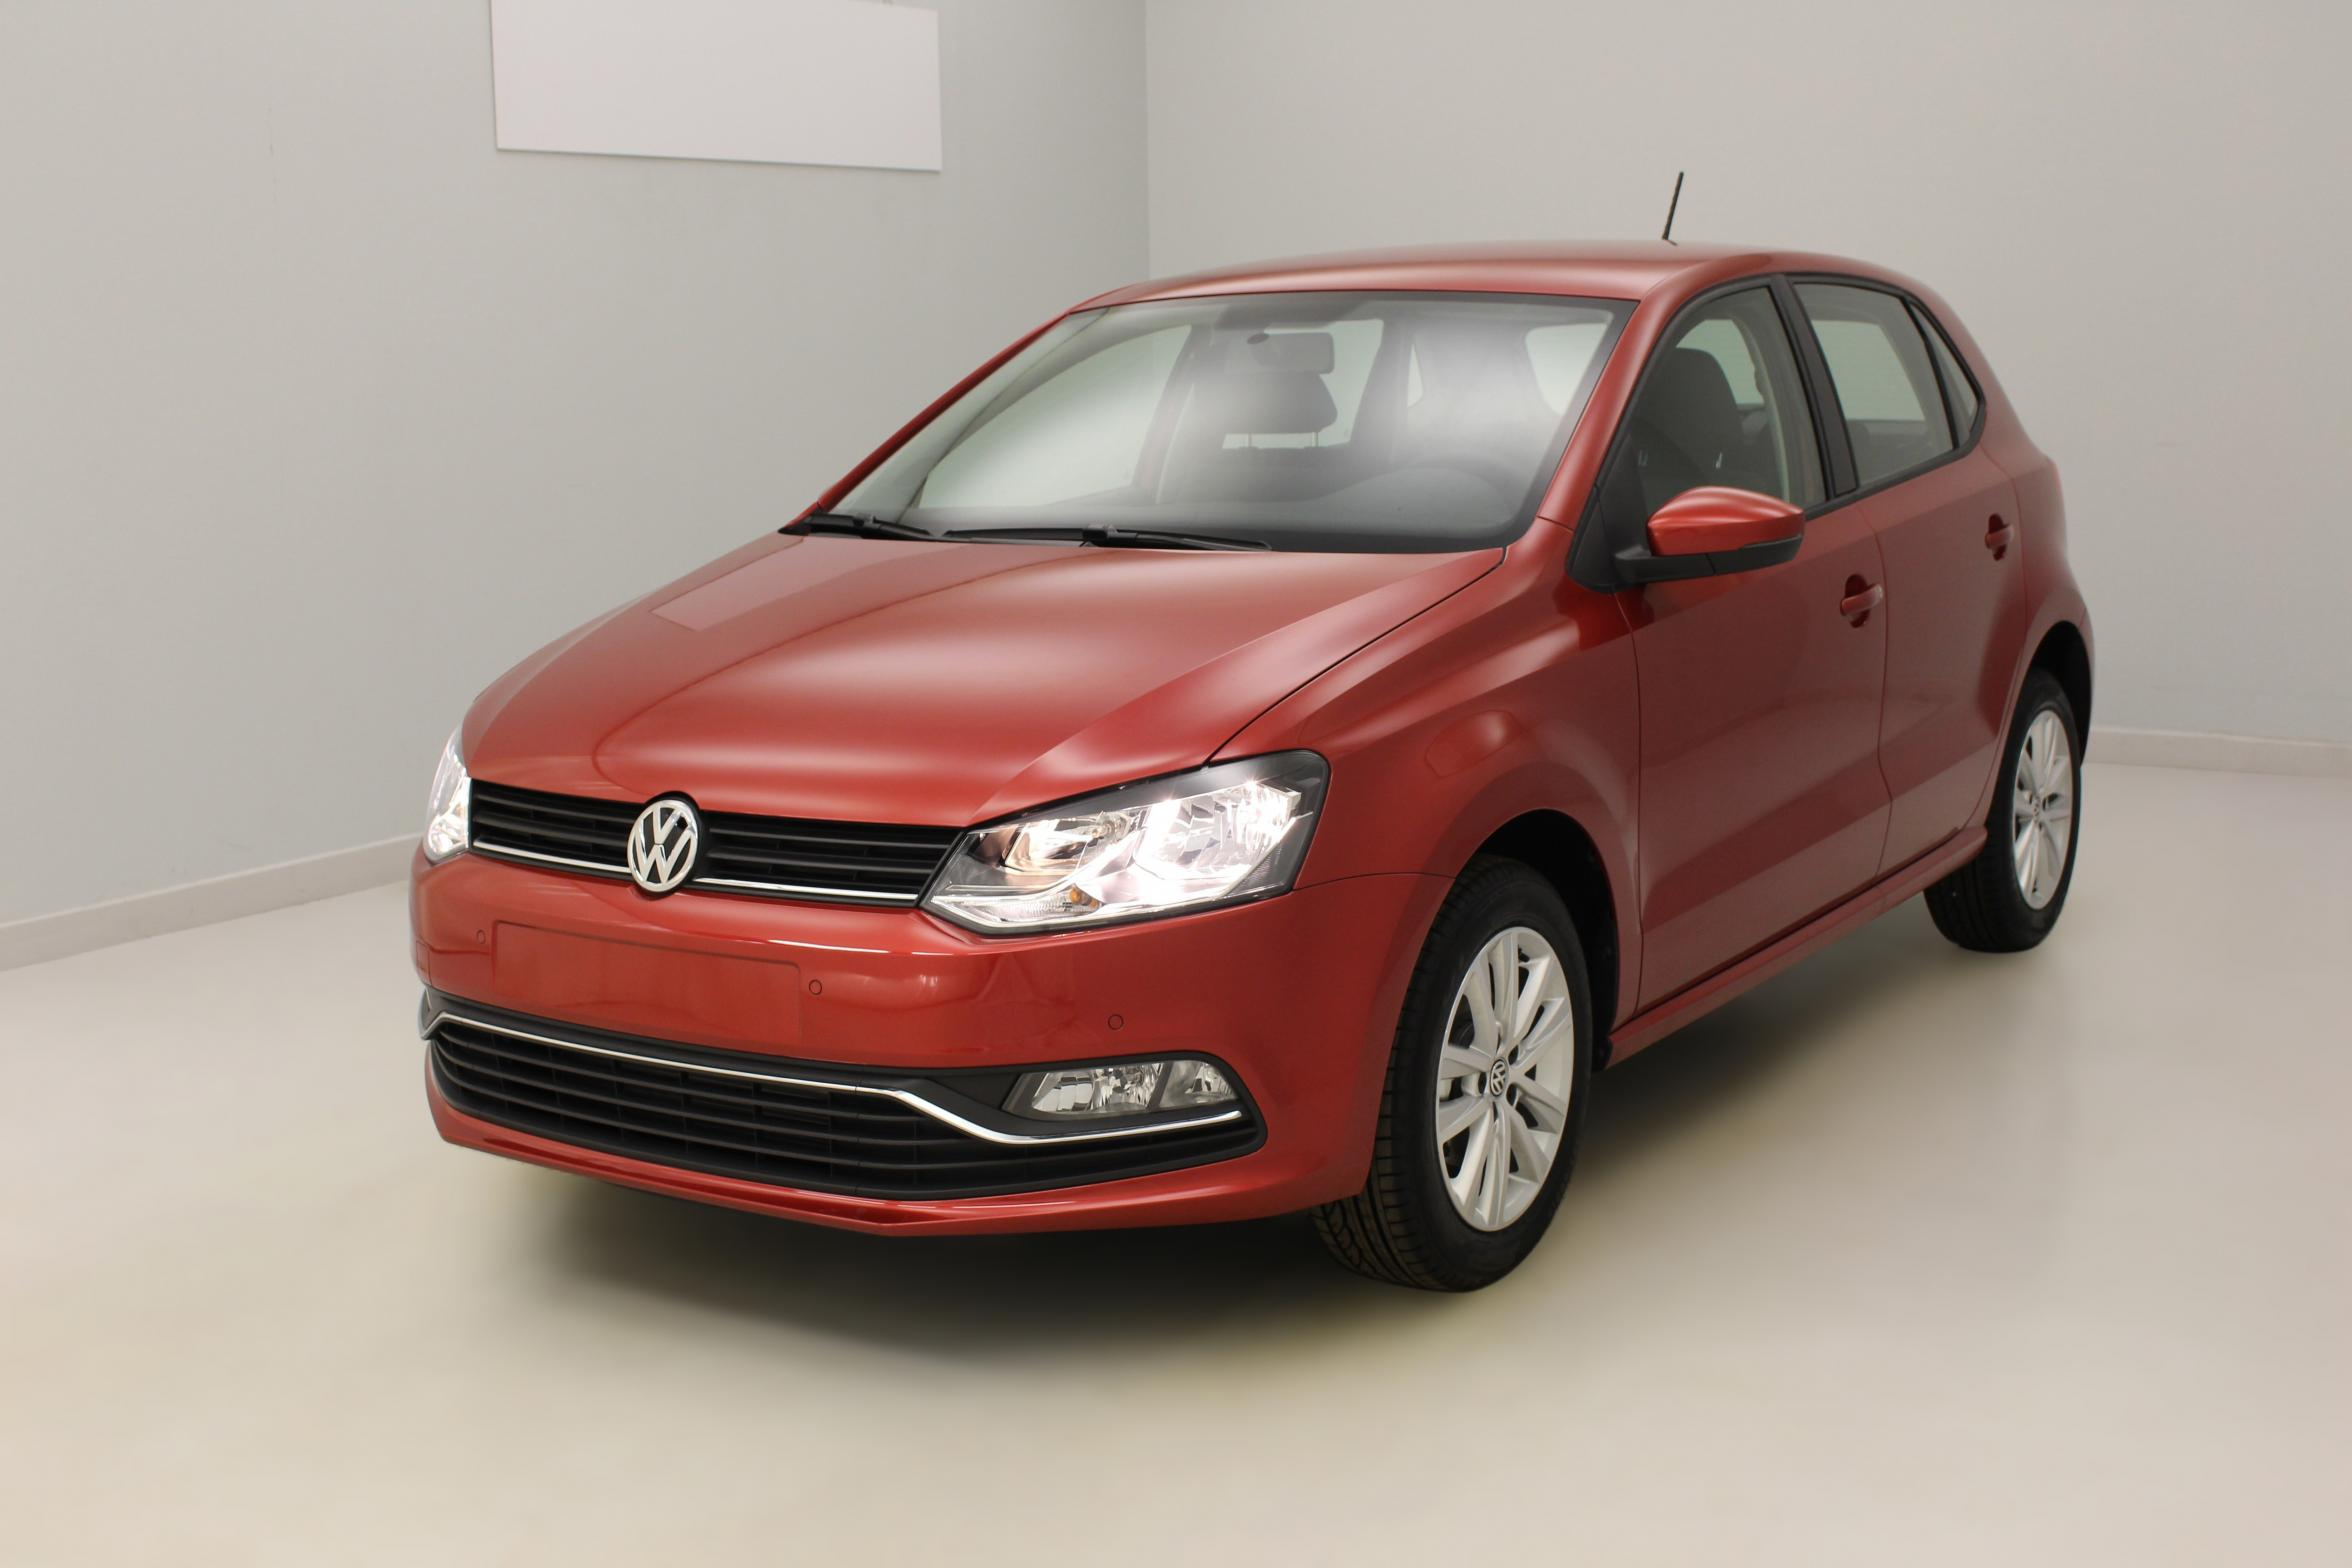 VOLKSWAGEN Nouvelle Polo 1.2 TSI 90 BlueMotion Technology Confortline Rouge Sunset - Garantie 5 ans ou 100.000 kms avec options